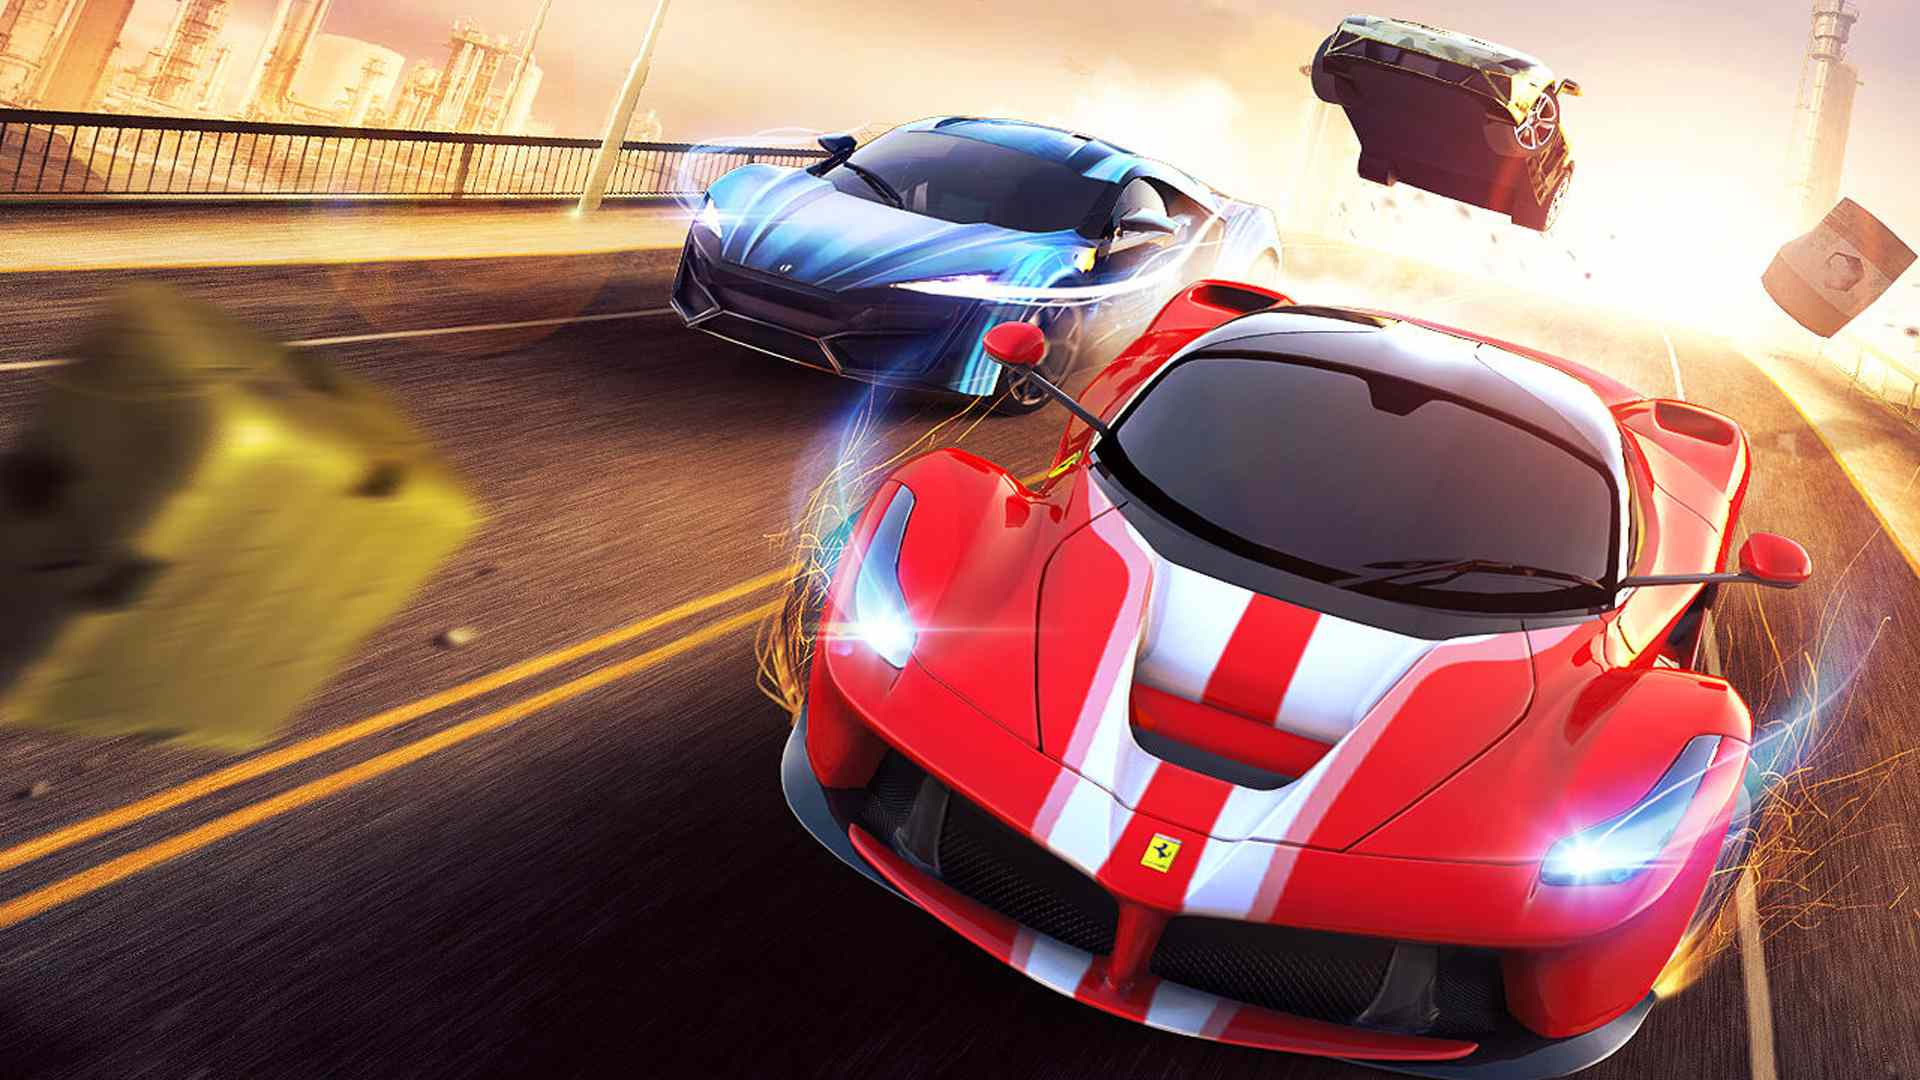 How To Make Racing Games Even More Exciting